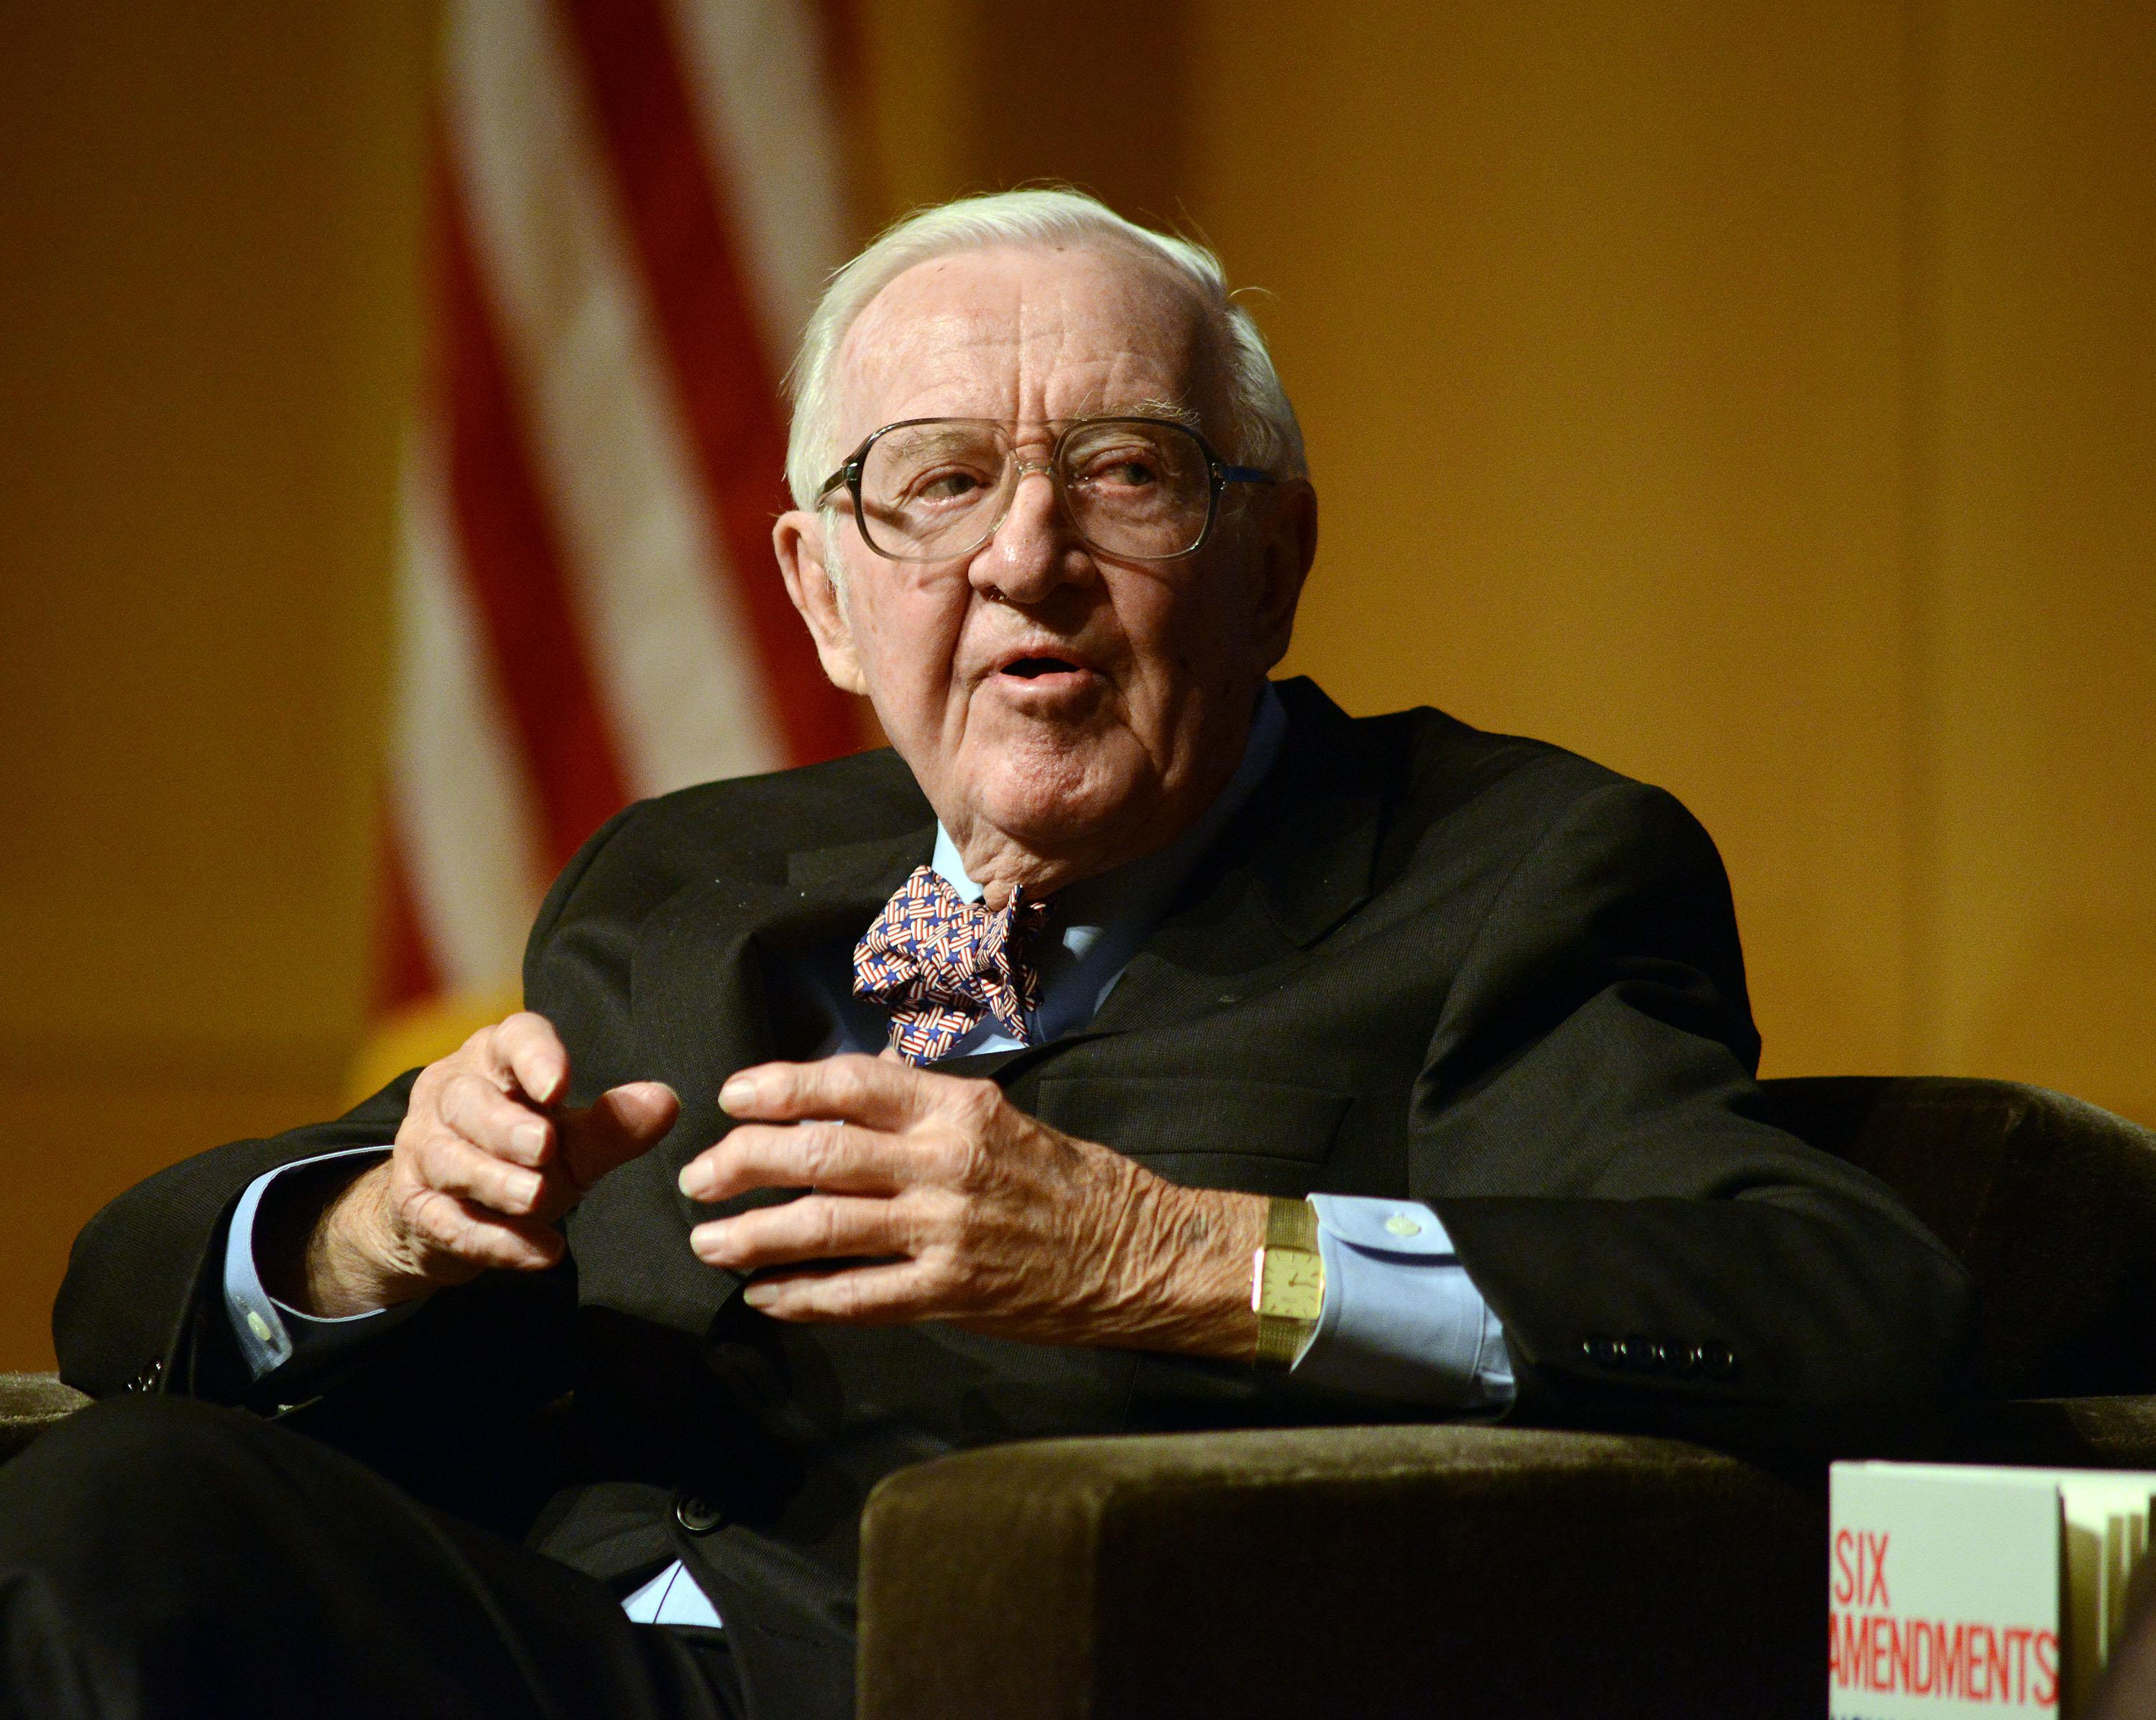 PHILADELPHIA, PA - APRIL 28: Retired Supreme Court Justice John Paul Stevens answers a question posed by Brooke Gladstone (not shown), Host and Managing Editor of National Public Radio newsmagazine at the National Constitution Center April 28 2014 in Philadelphia, Pennsylvania.  Stevens discussed his new book, Six Amendments: How and Why We Should Change the Constitution. (Photo by William Thomas Cain/Getty Images)